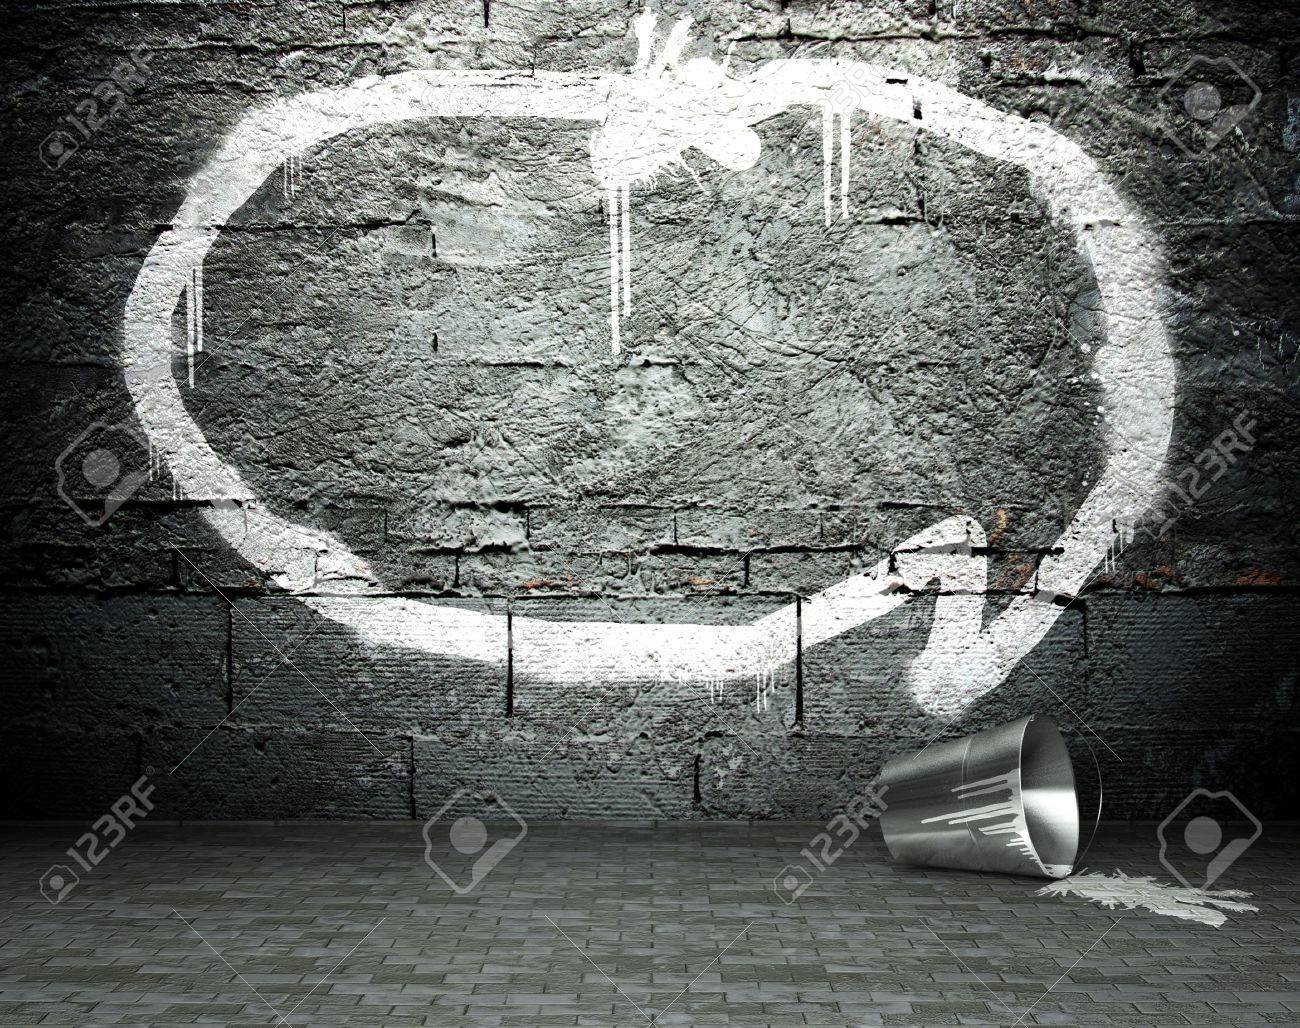 Graffiti Wall With Speech Bubble Street Art Background Stock Photo